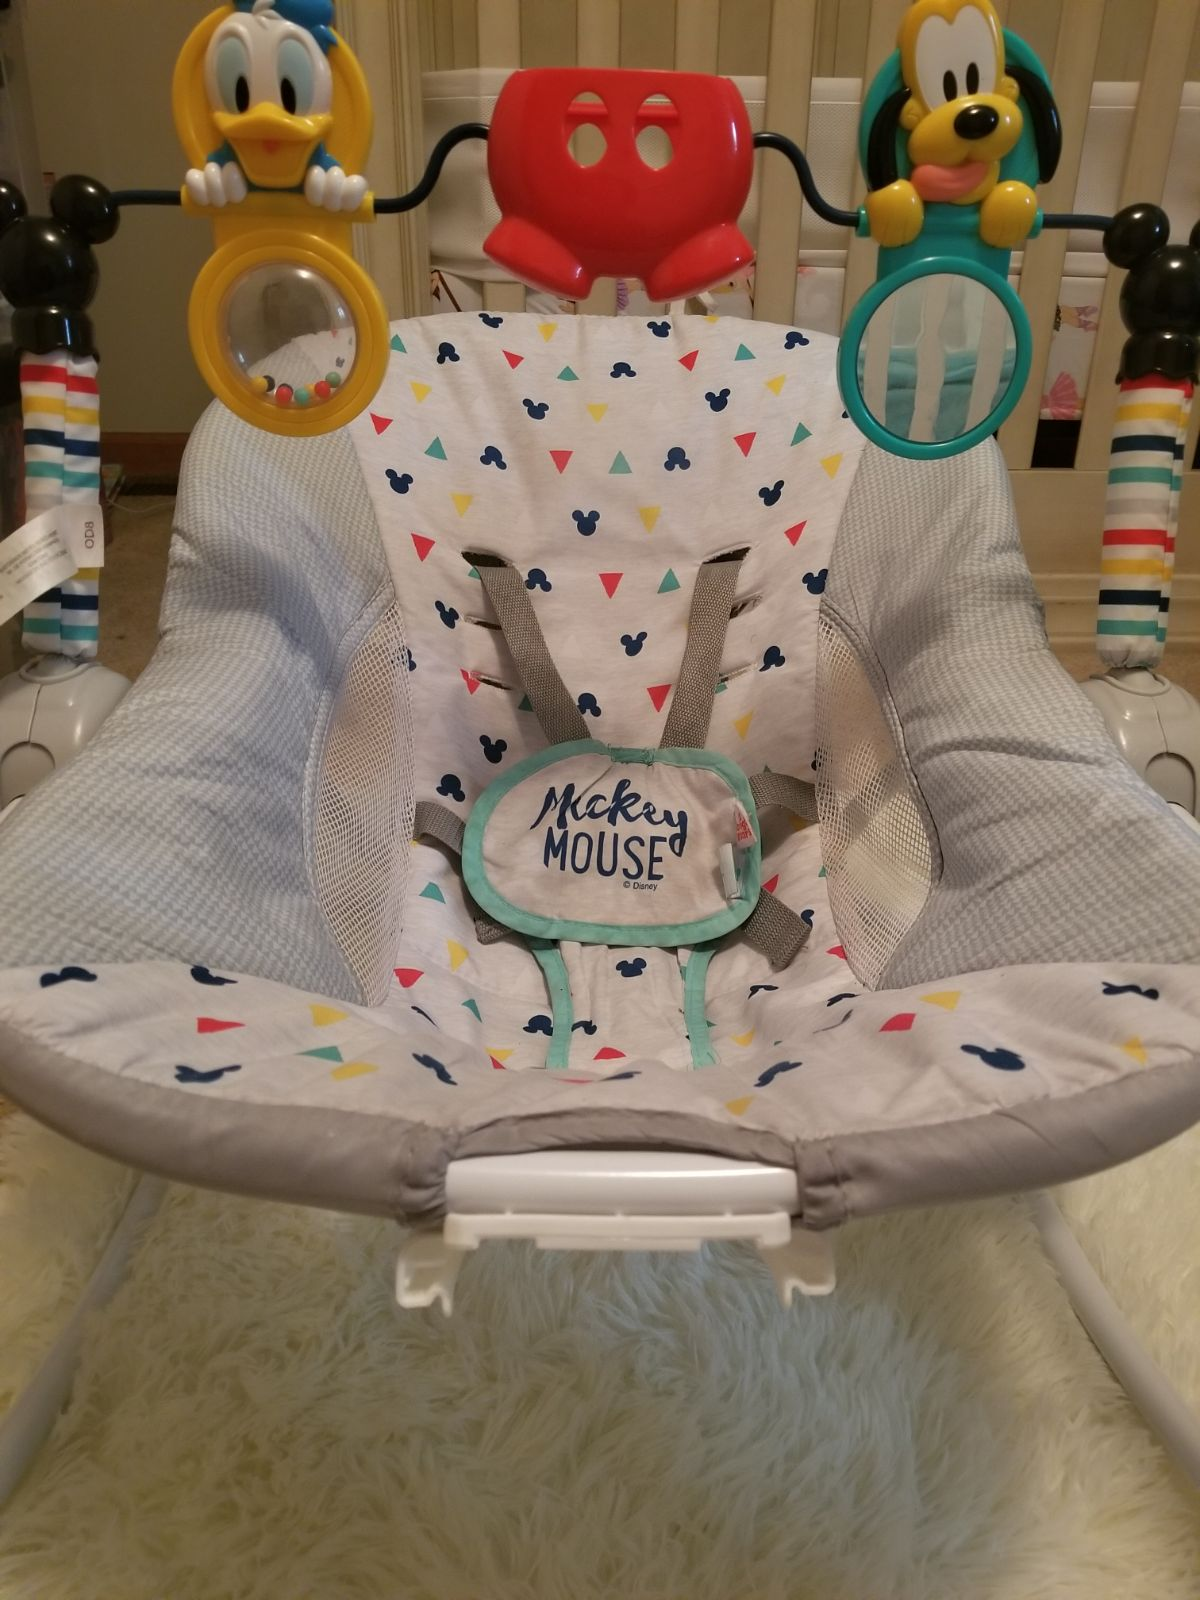 Mickey mouse infant seat